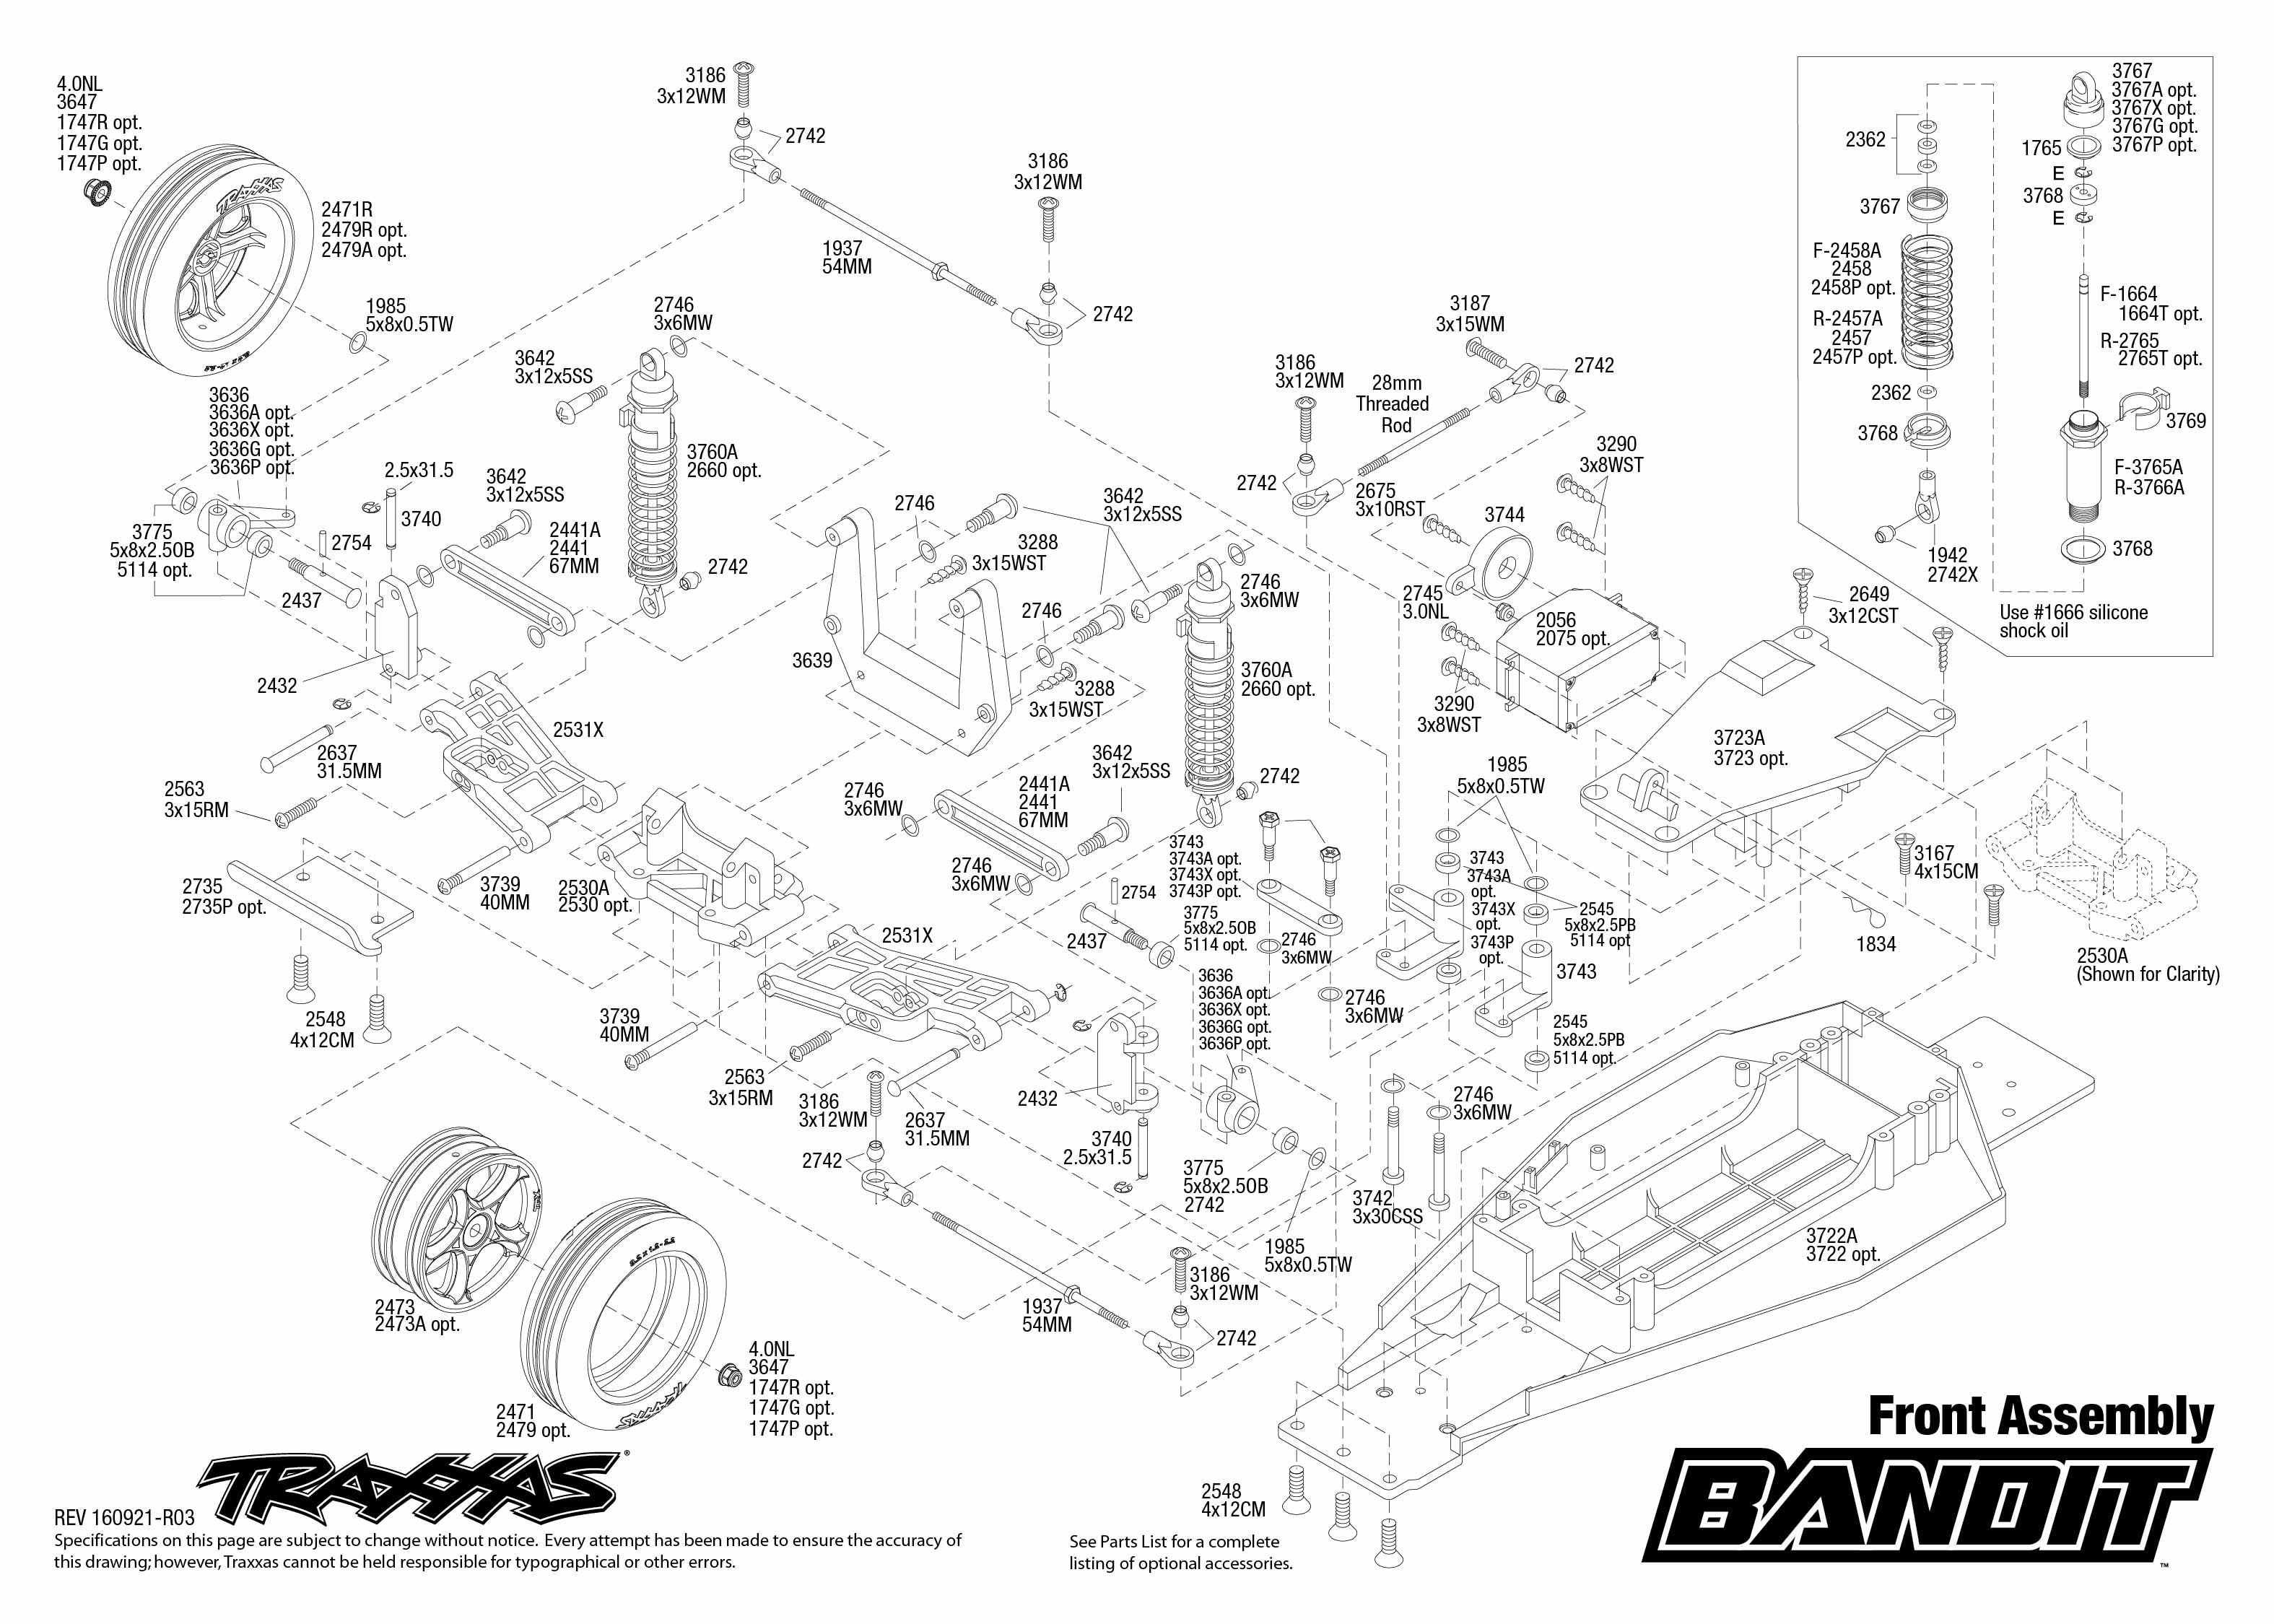 Outstanding Car Engine Parts List Gift - Simple Wiring Diagram ...